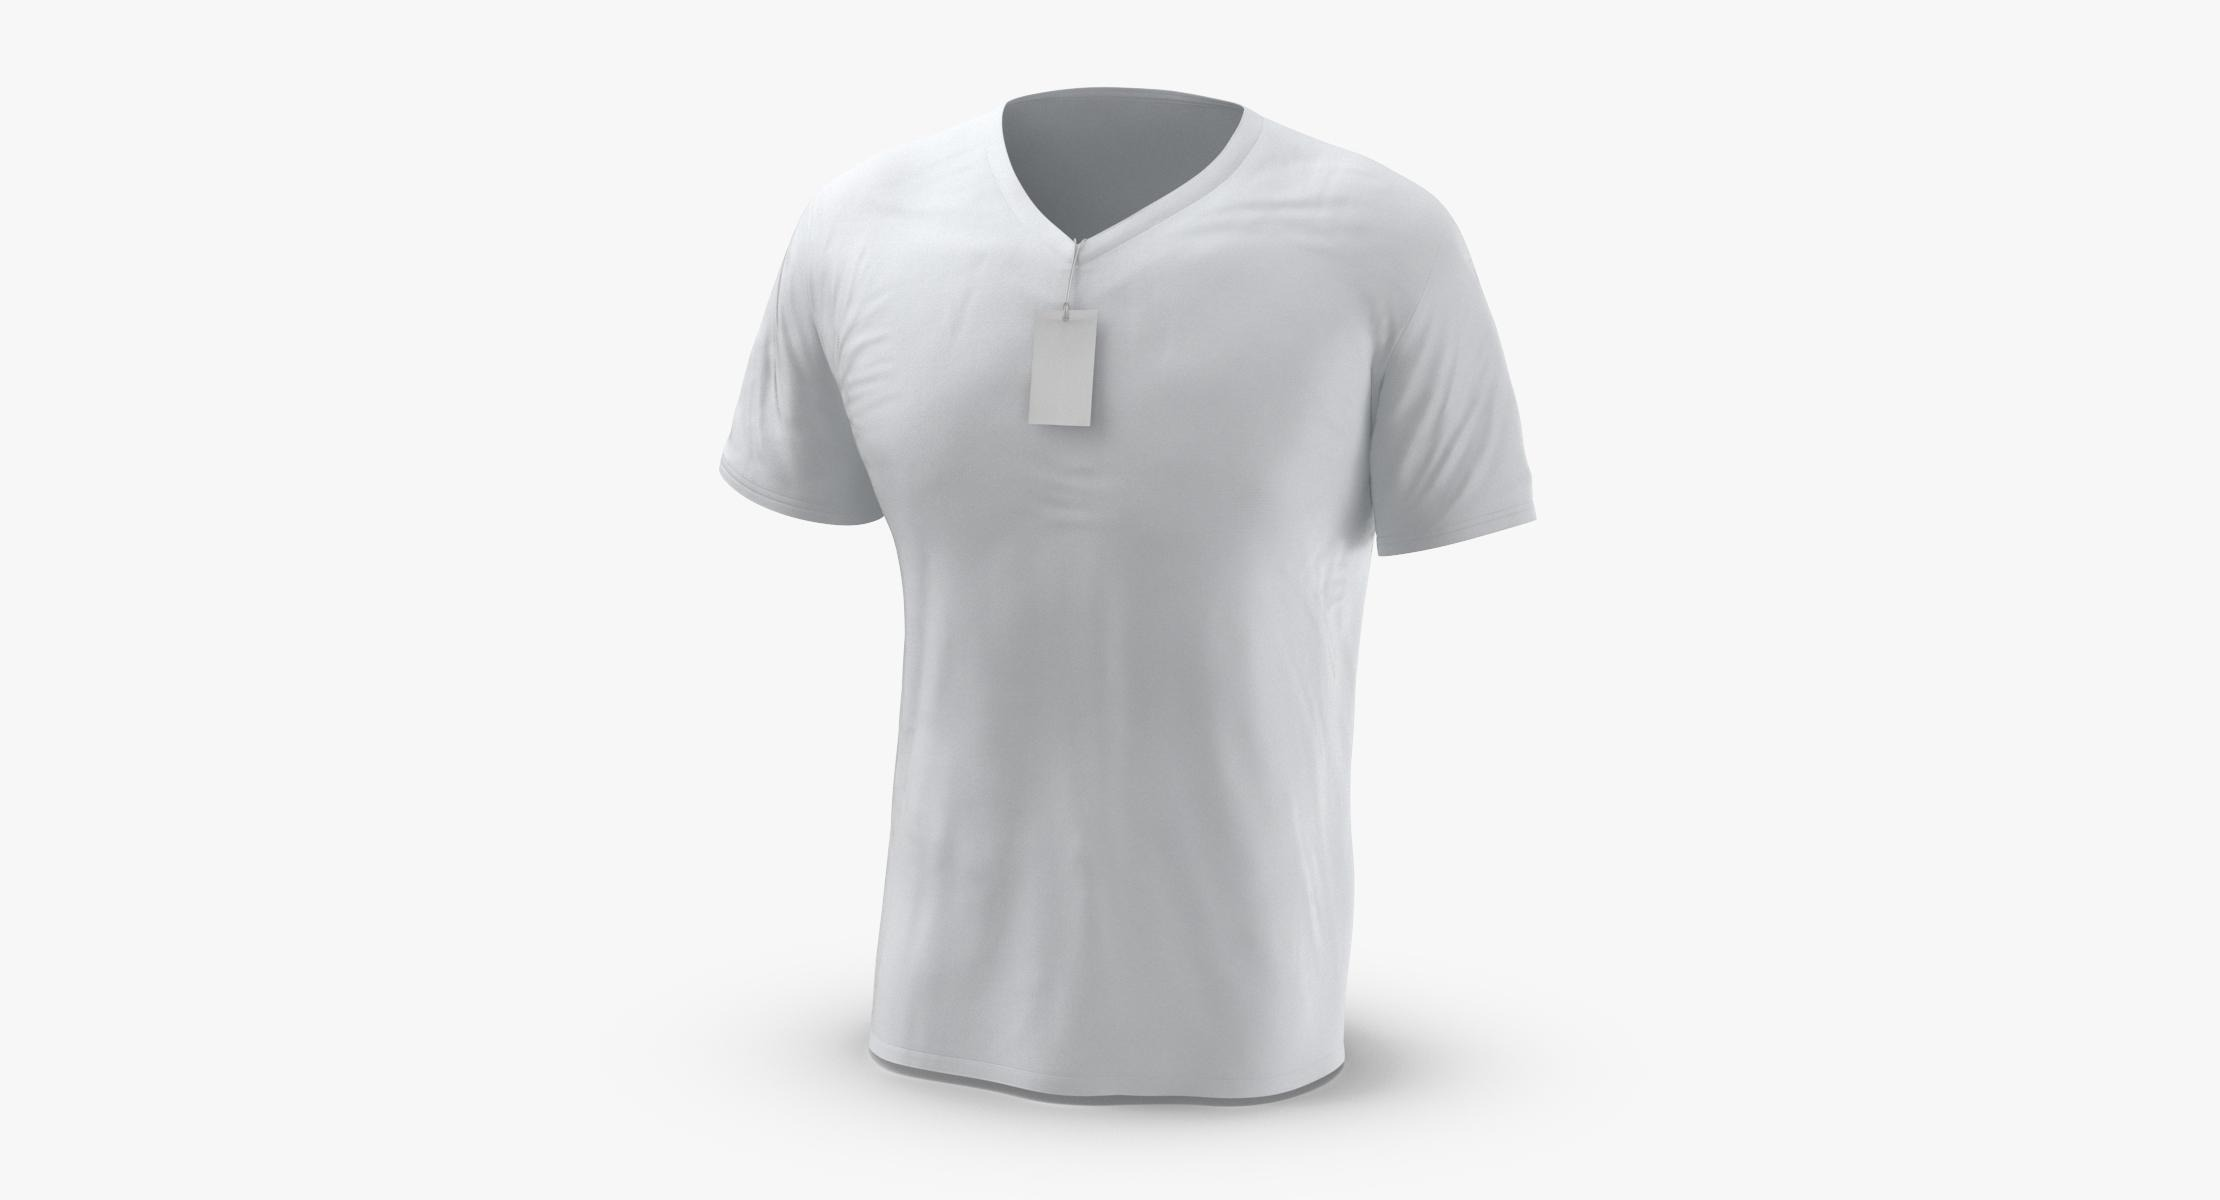 Male V-Neck Worn With Tag - reel 1